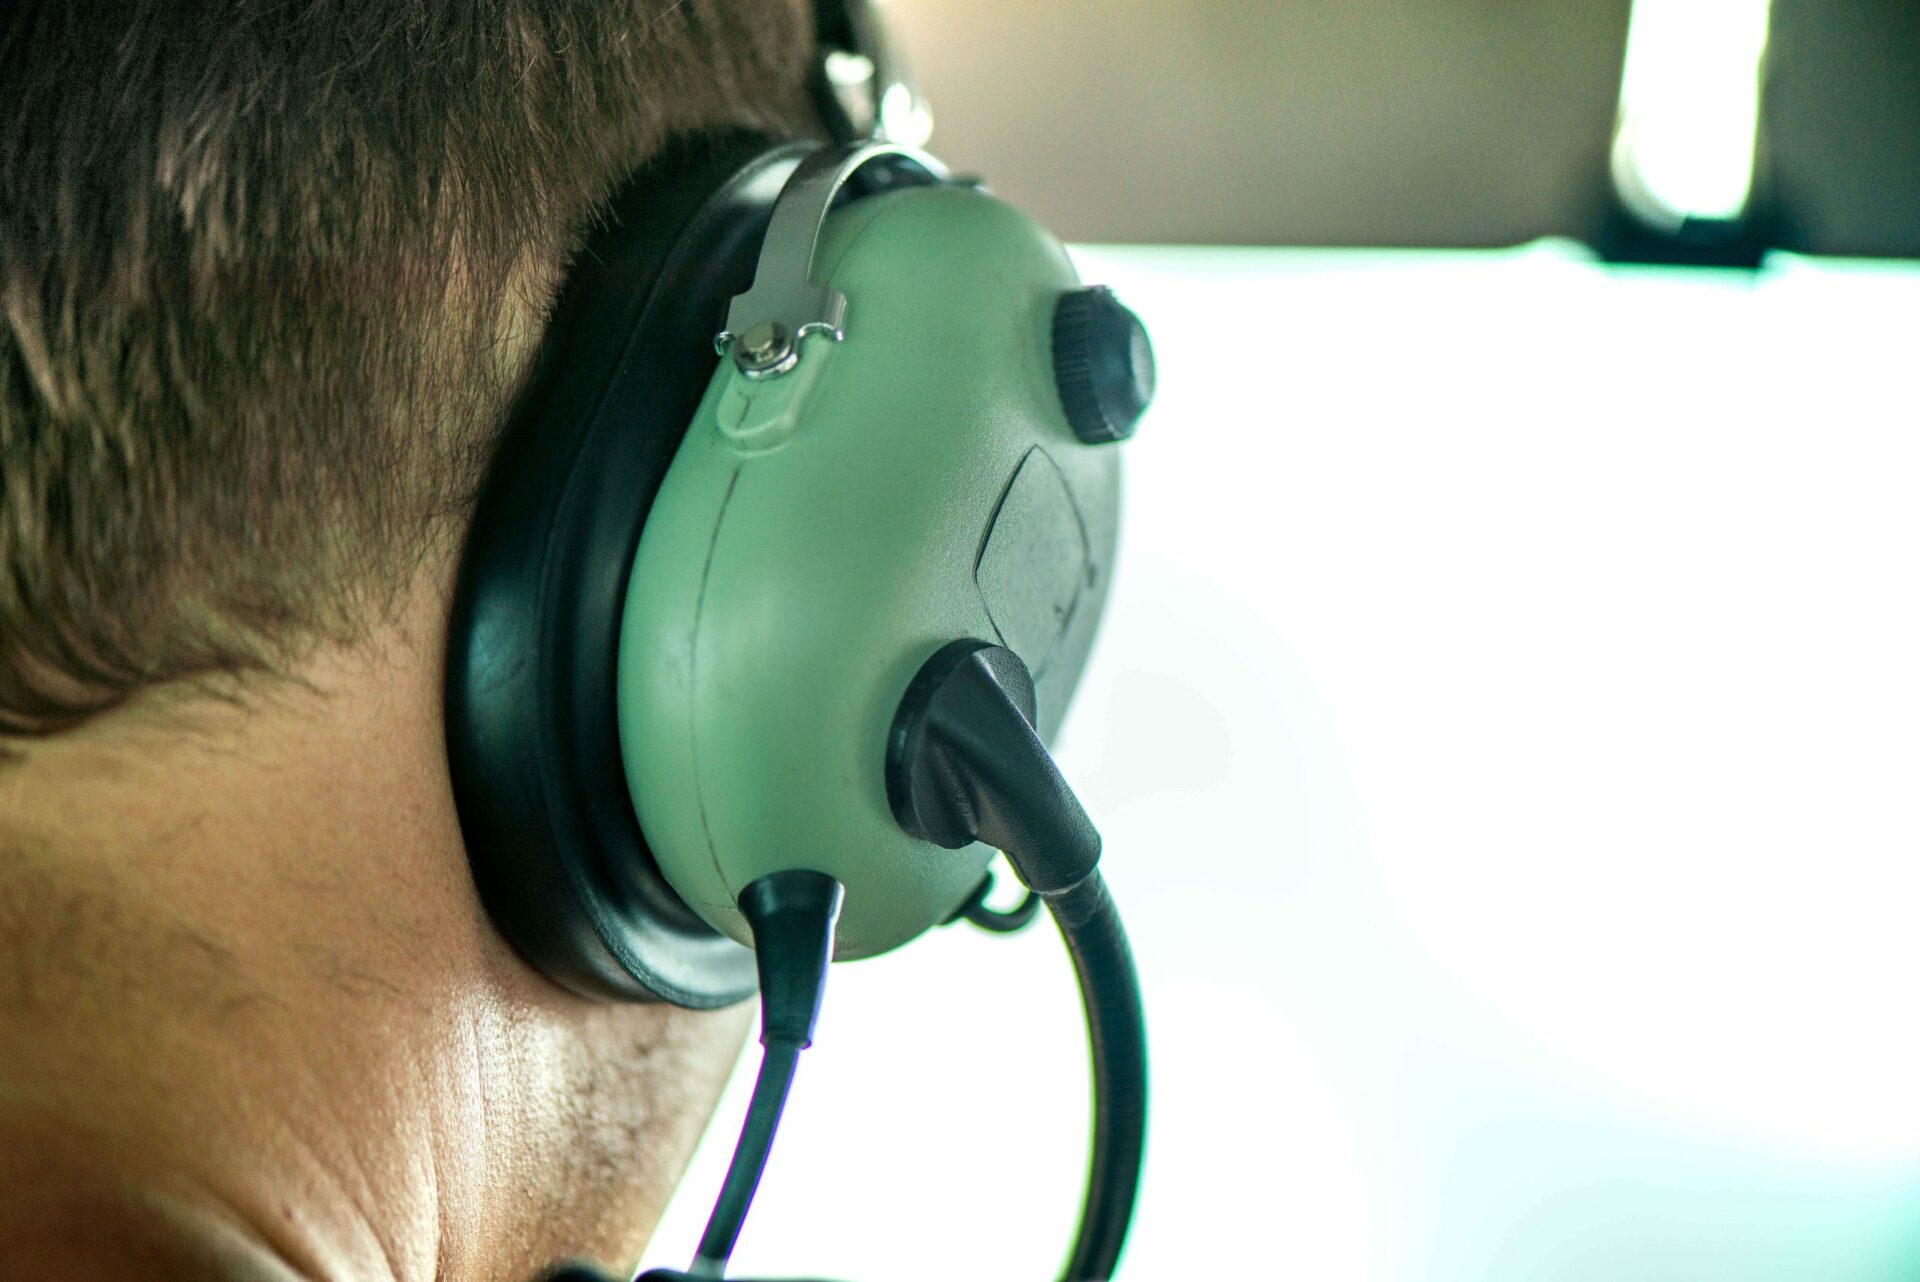 Best Aviation Headsets of 2021